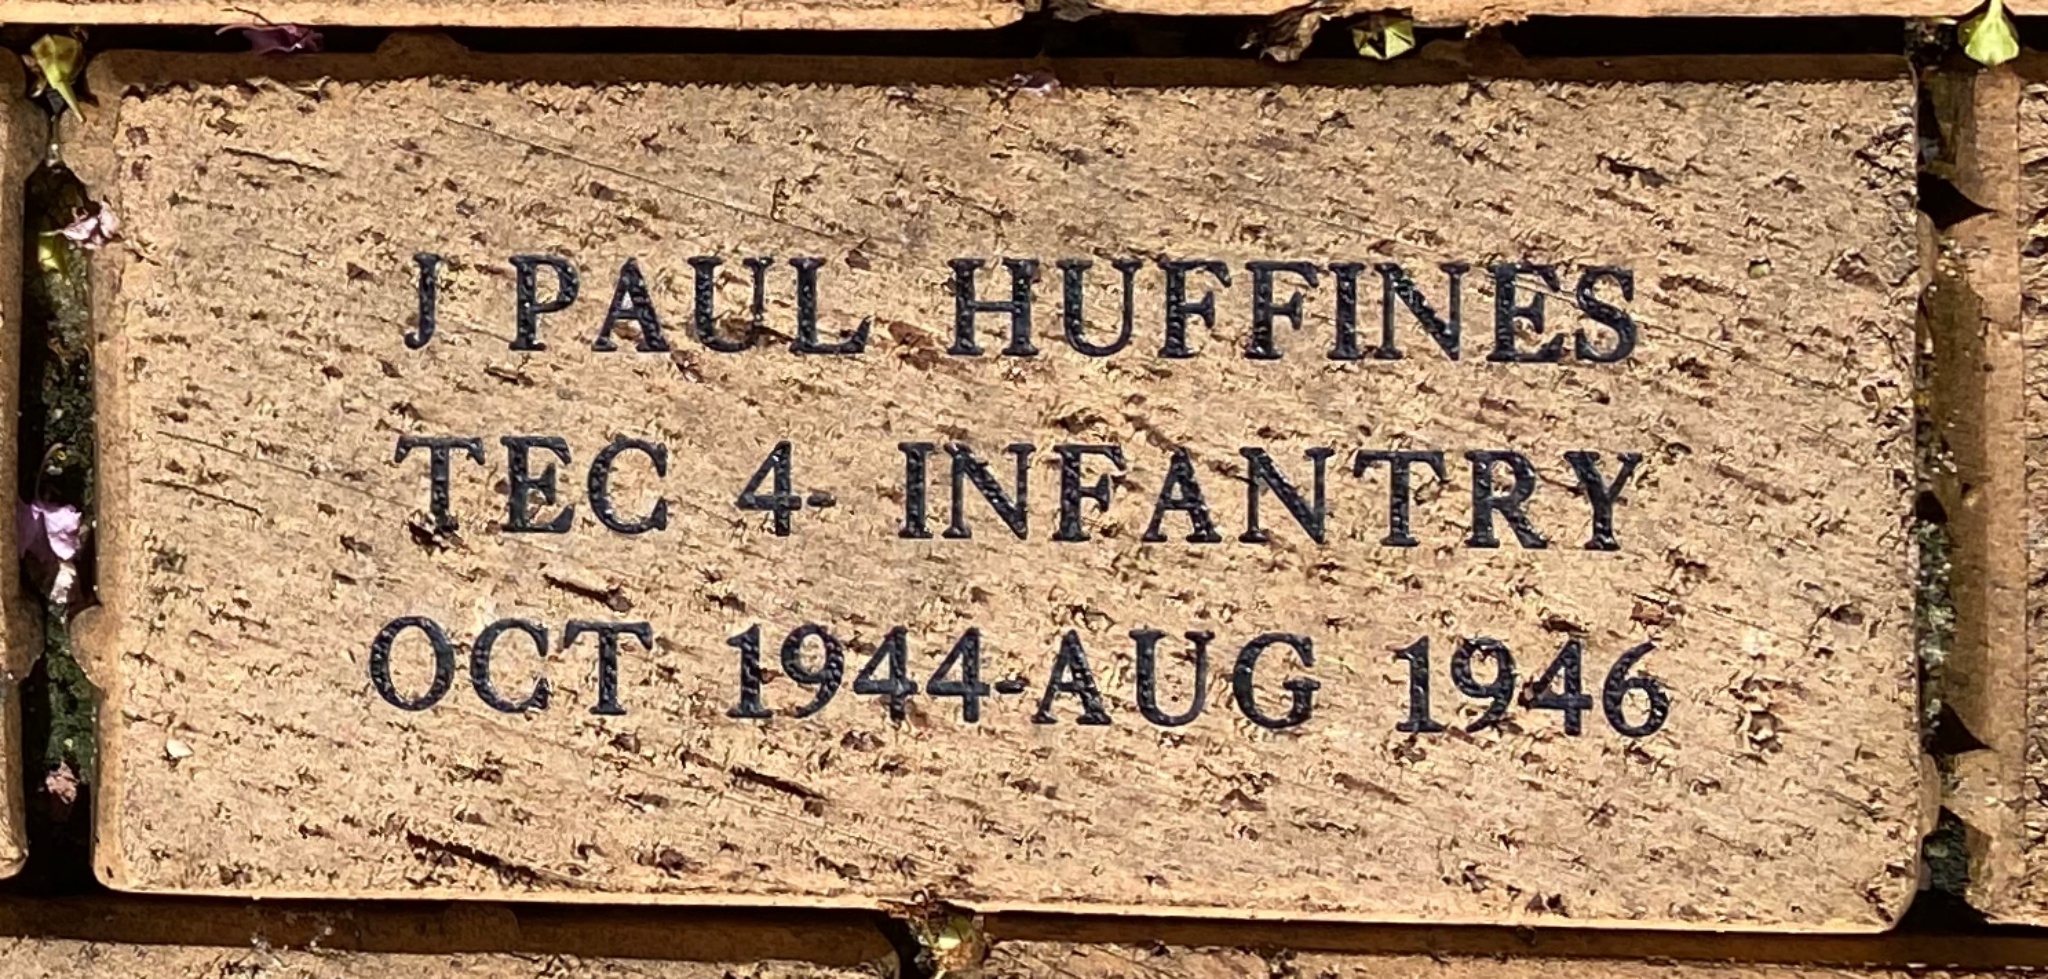 J. PAUL HUFFINES TEC 4- INFANTRY OCT 1944 – AUG 1946